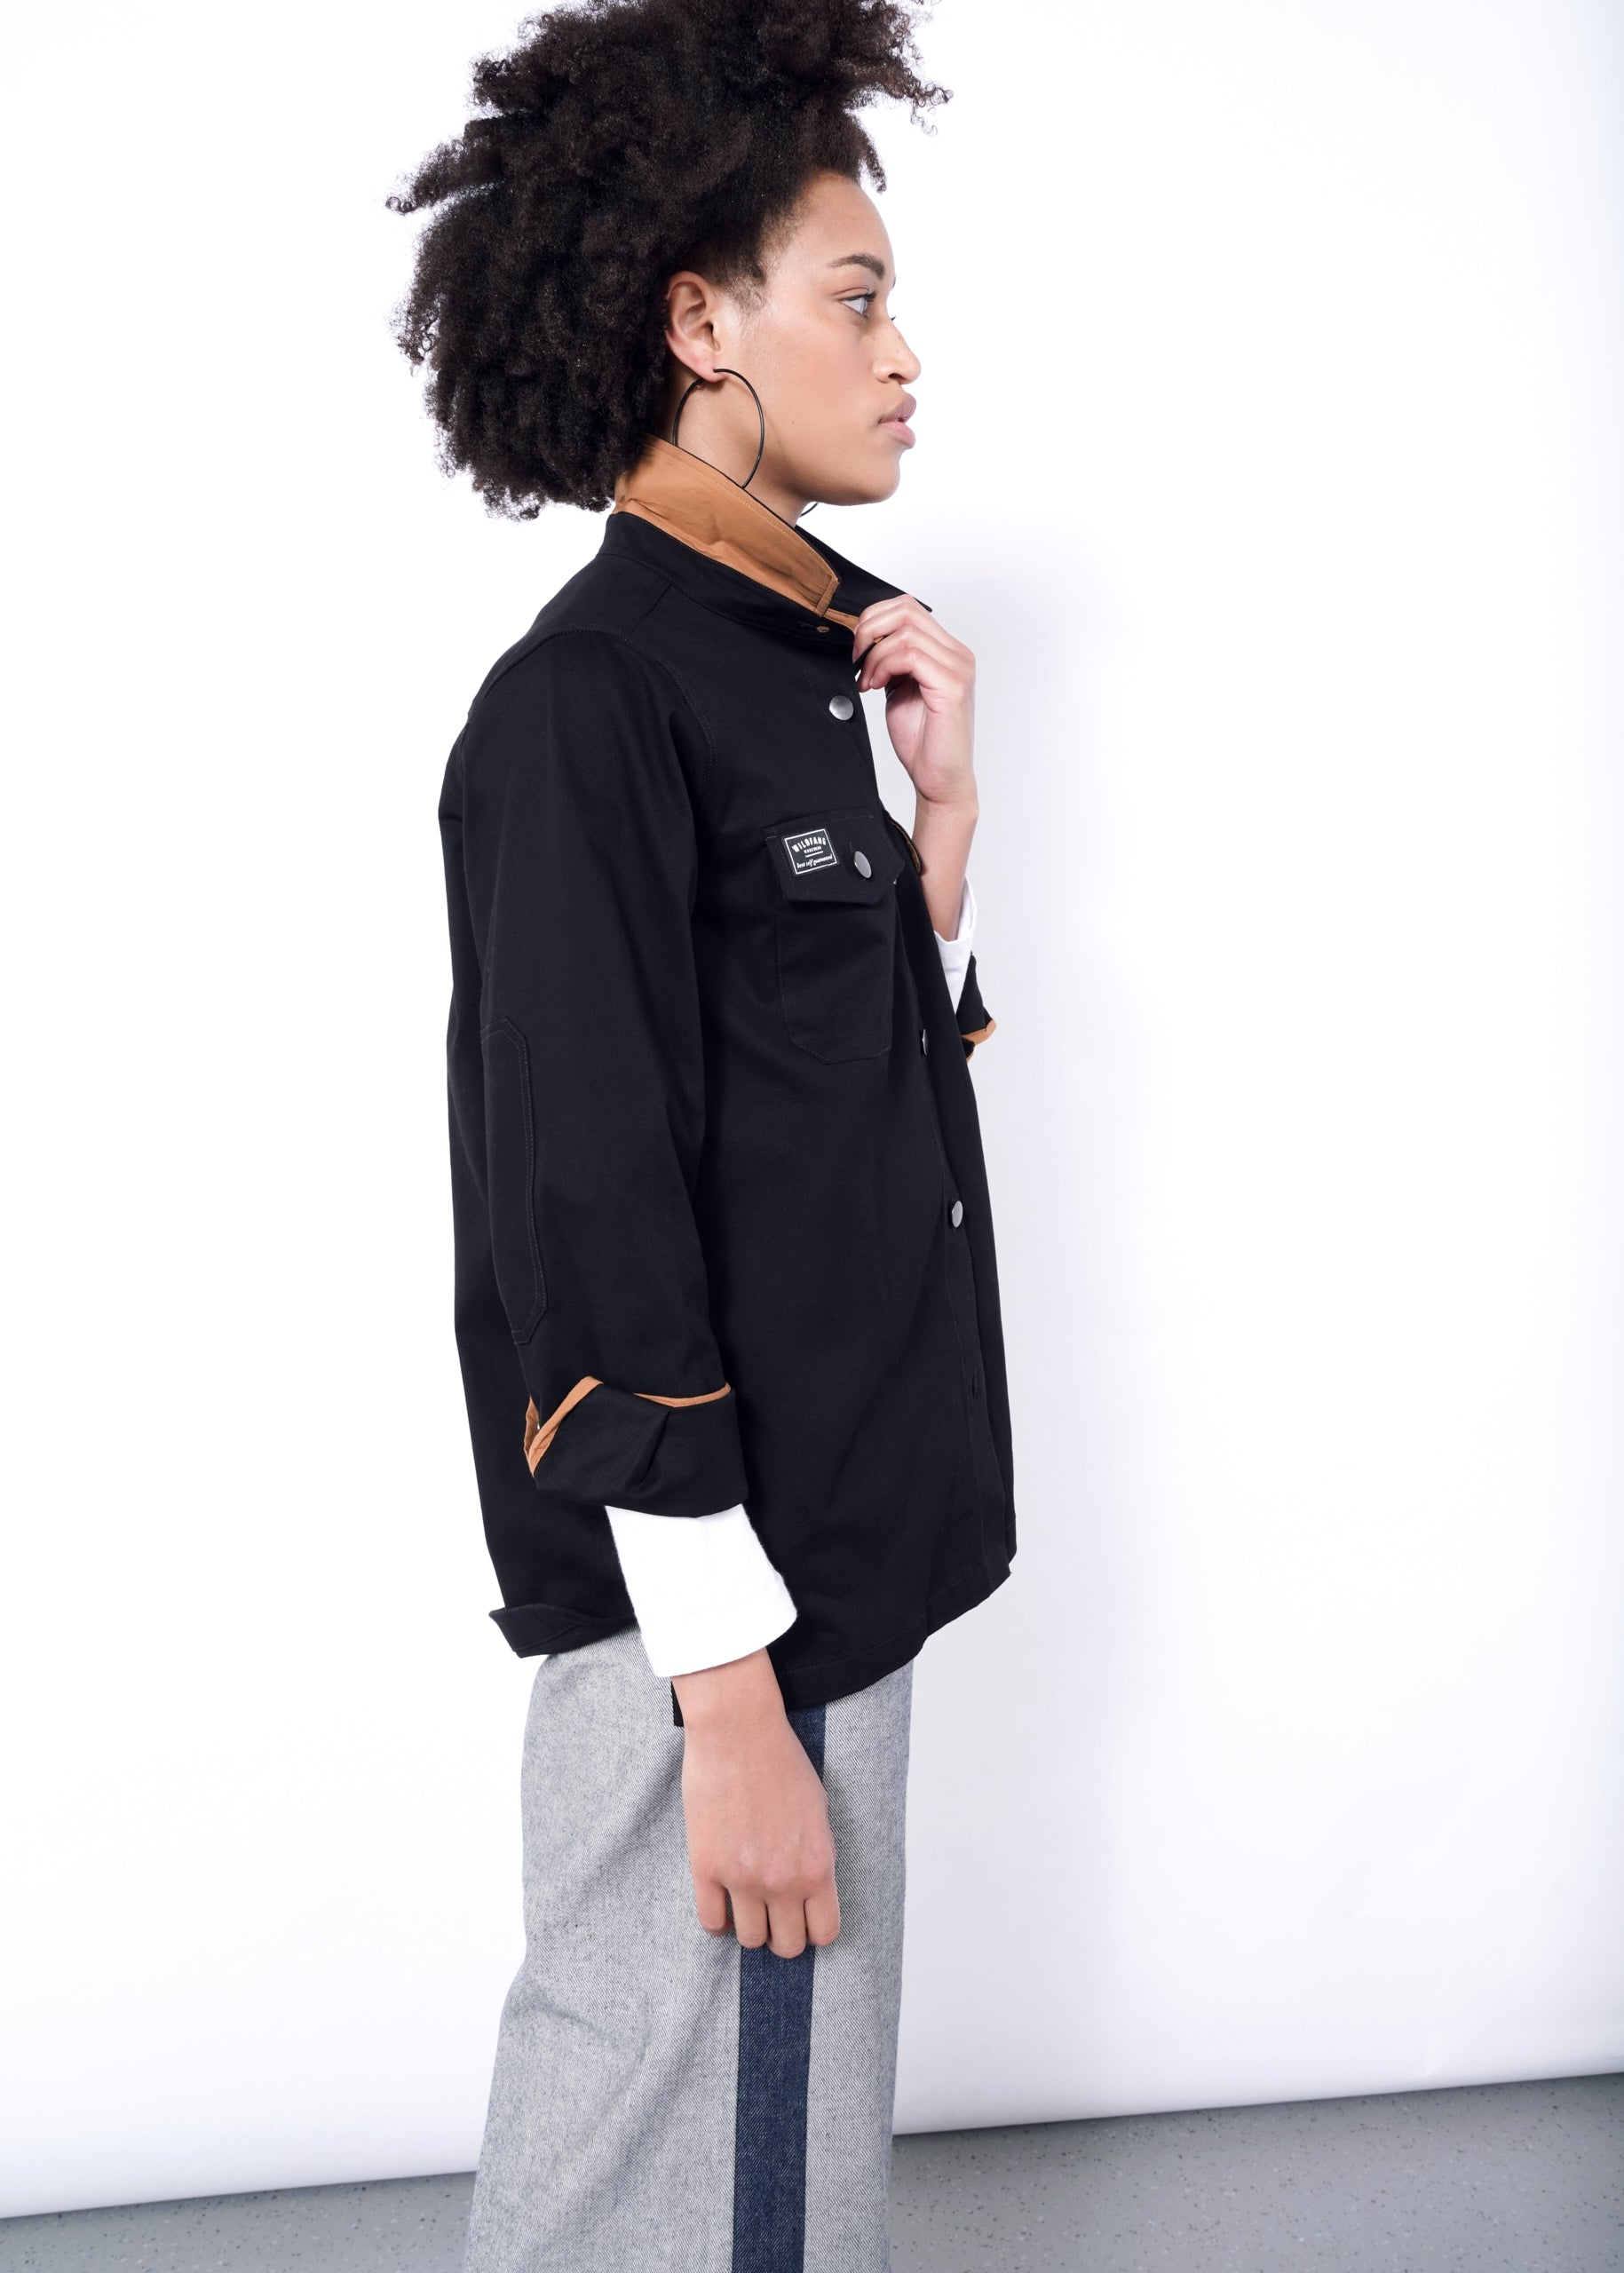 Model facing right, wearing black essential shirt jacket (shacket) in size medium with collar popped to show orange contrast lining